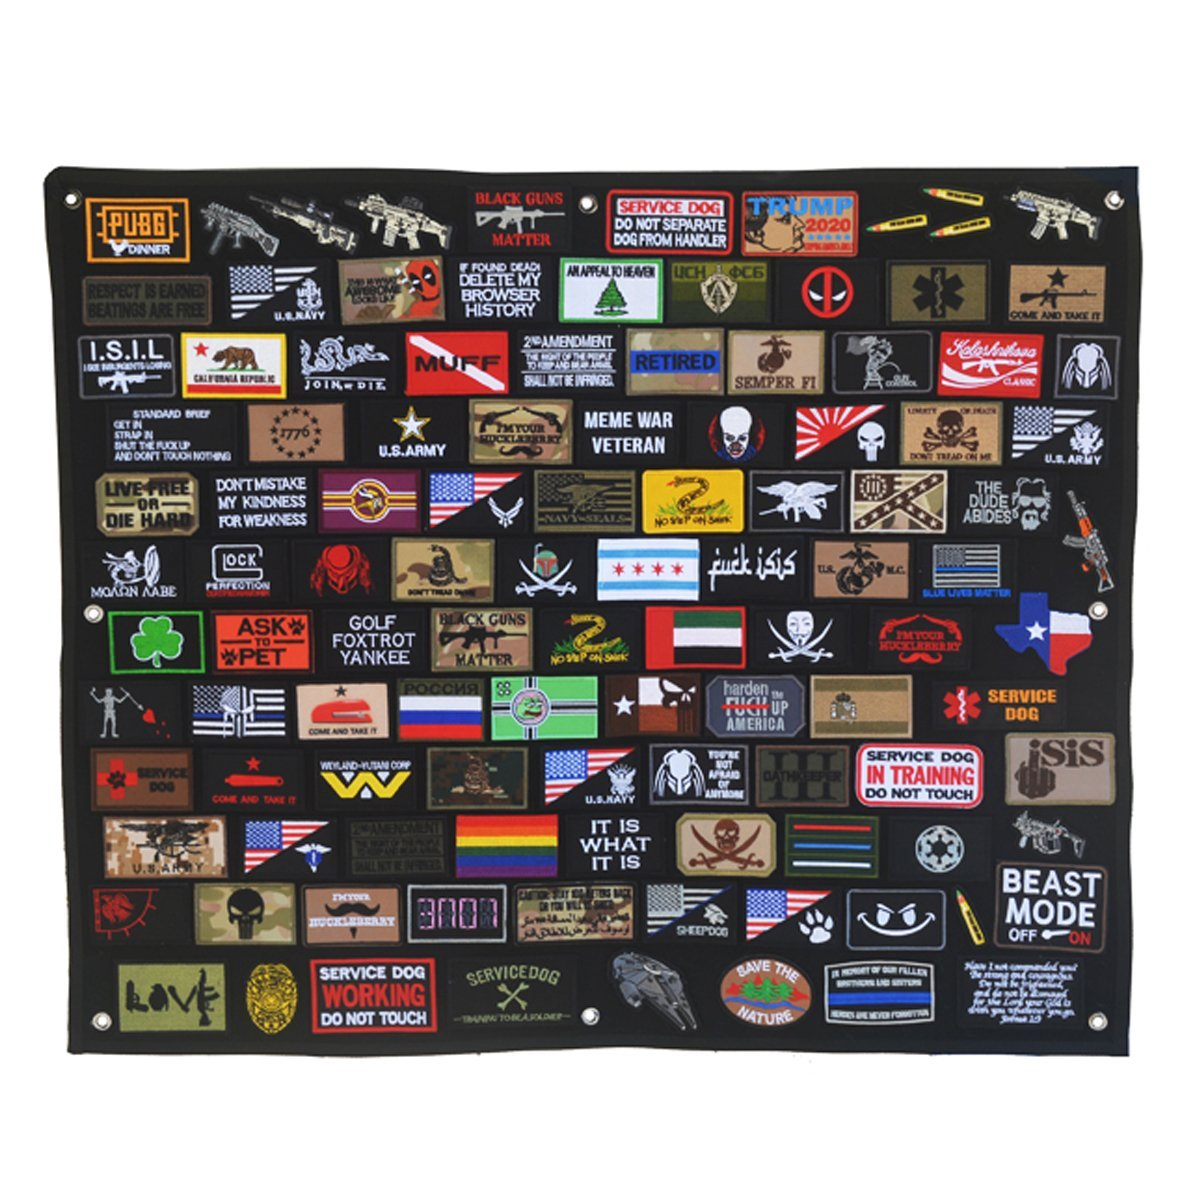 Schnappy Tactical Military Combat Morale Patch Holder Display Board Hook & Loop Patch Panel,43.3''X27.5'' (Large) by Schnappy